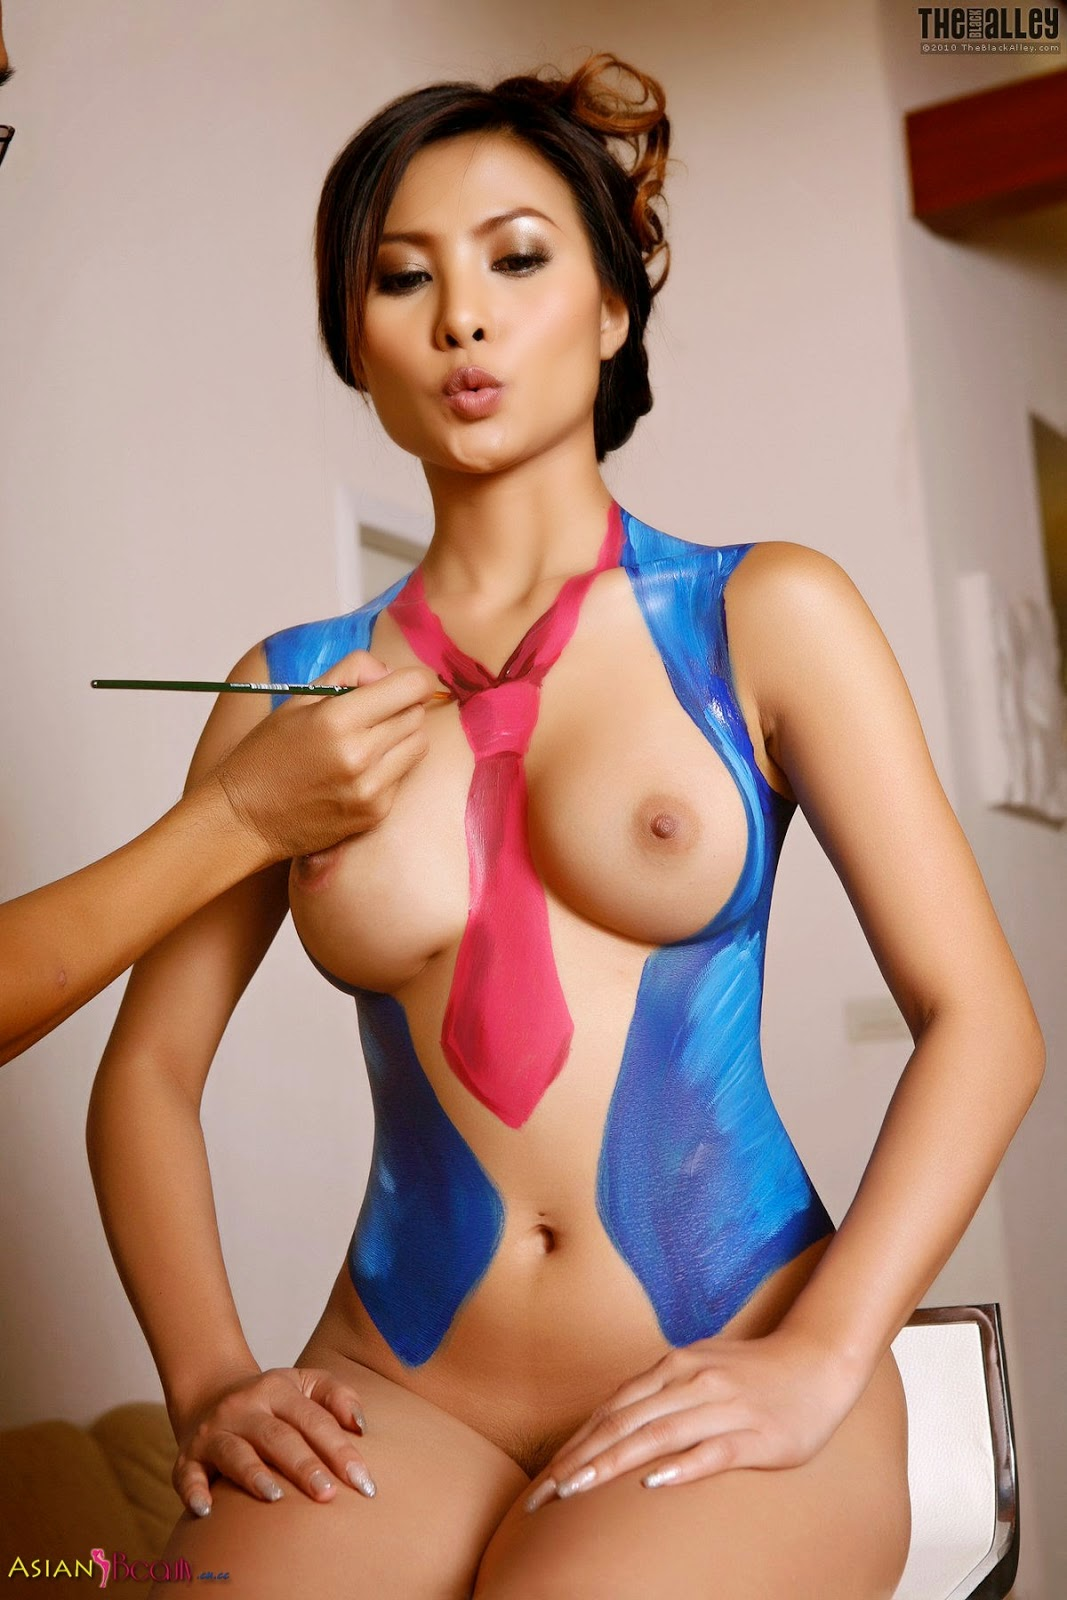 asian girl model naked